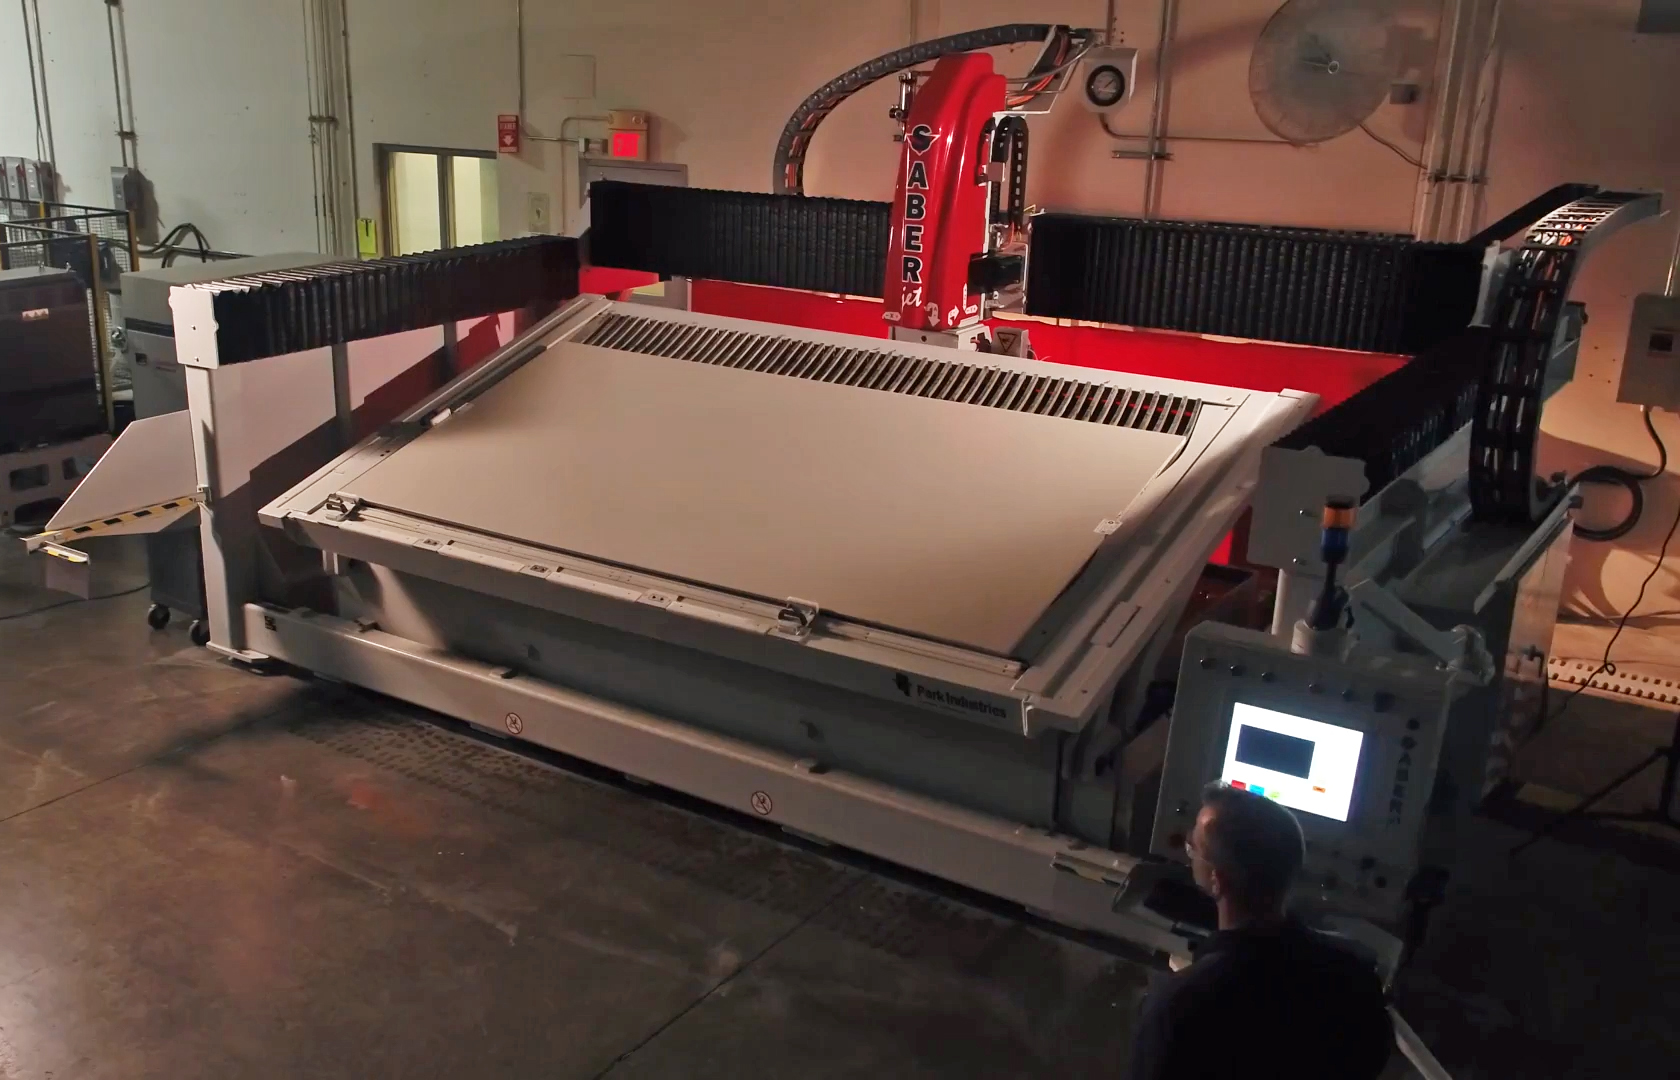 SABERjet CNC sawjet with slab loading tank for stone countertop fabrication